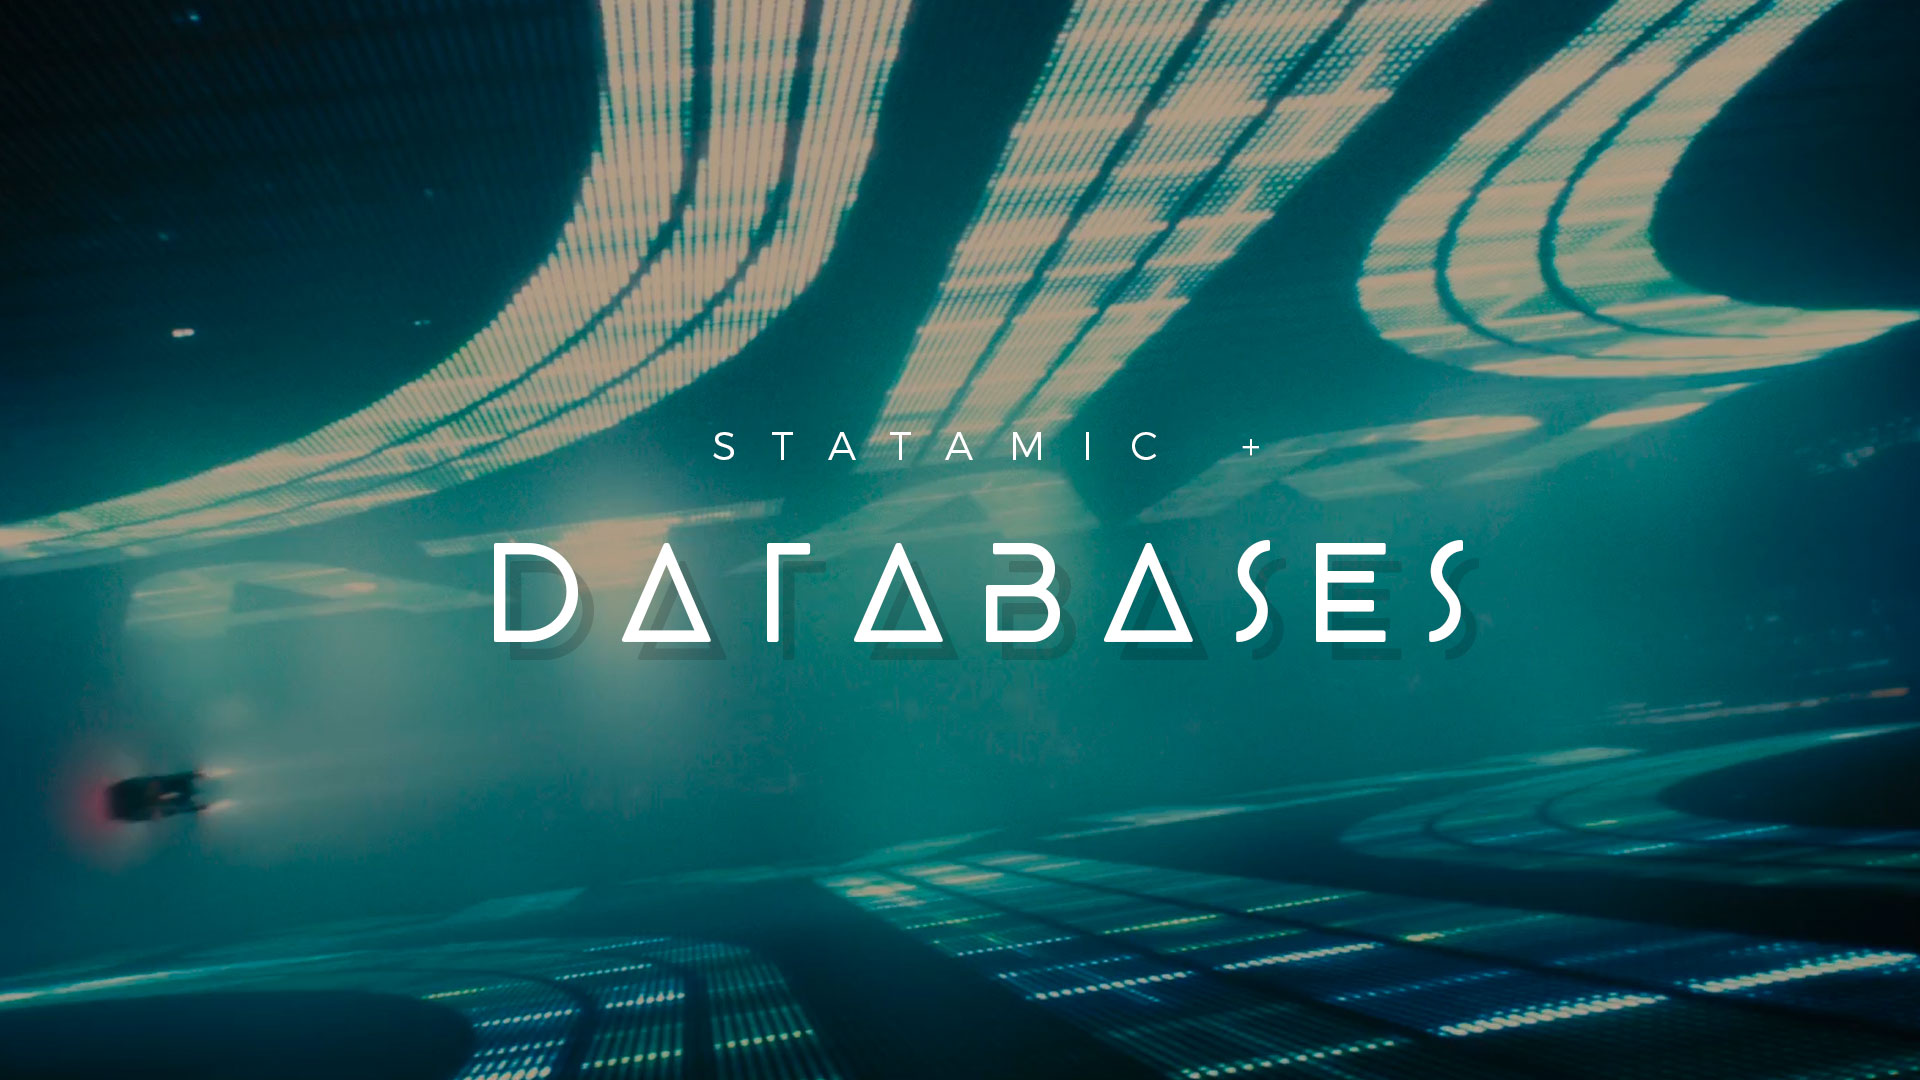 If you've ever wanted to use a Database along with Statamic, we'll show you how. We even did all the work for you.